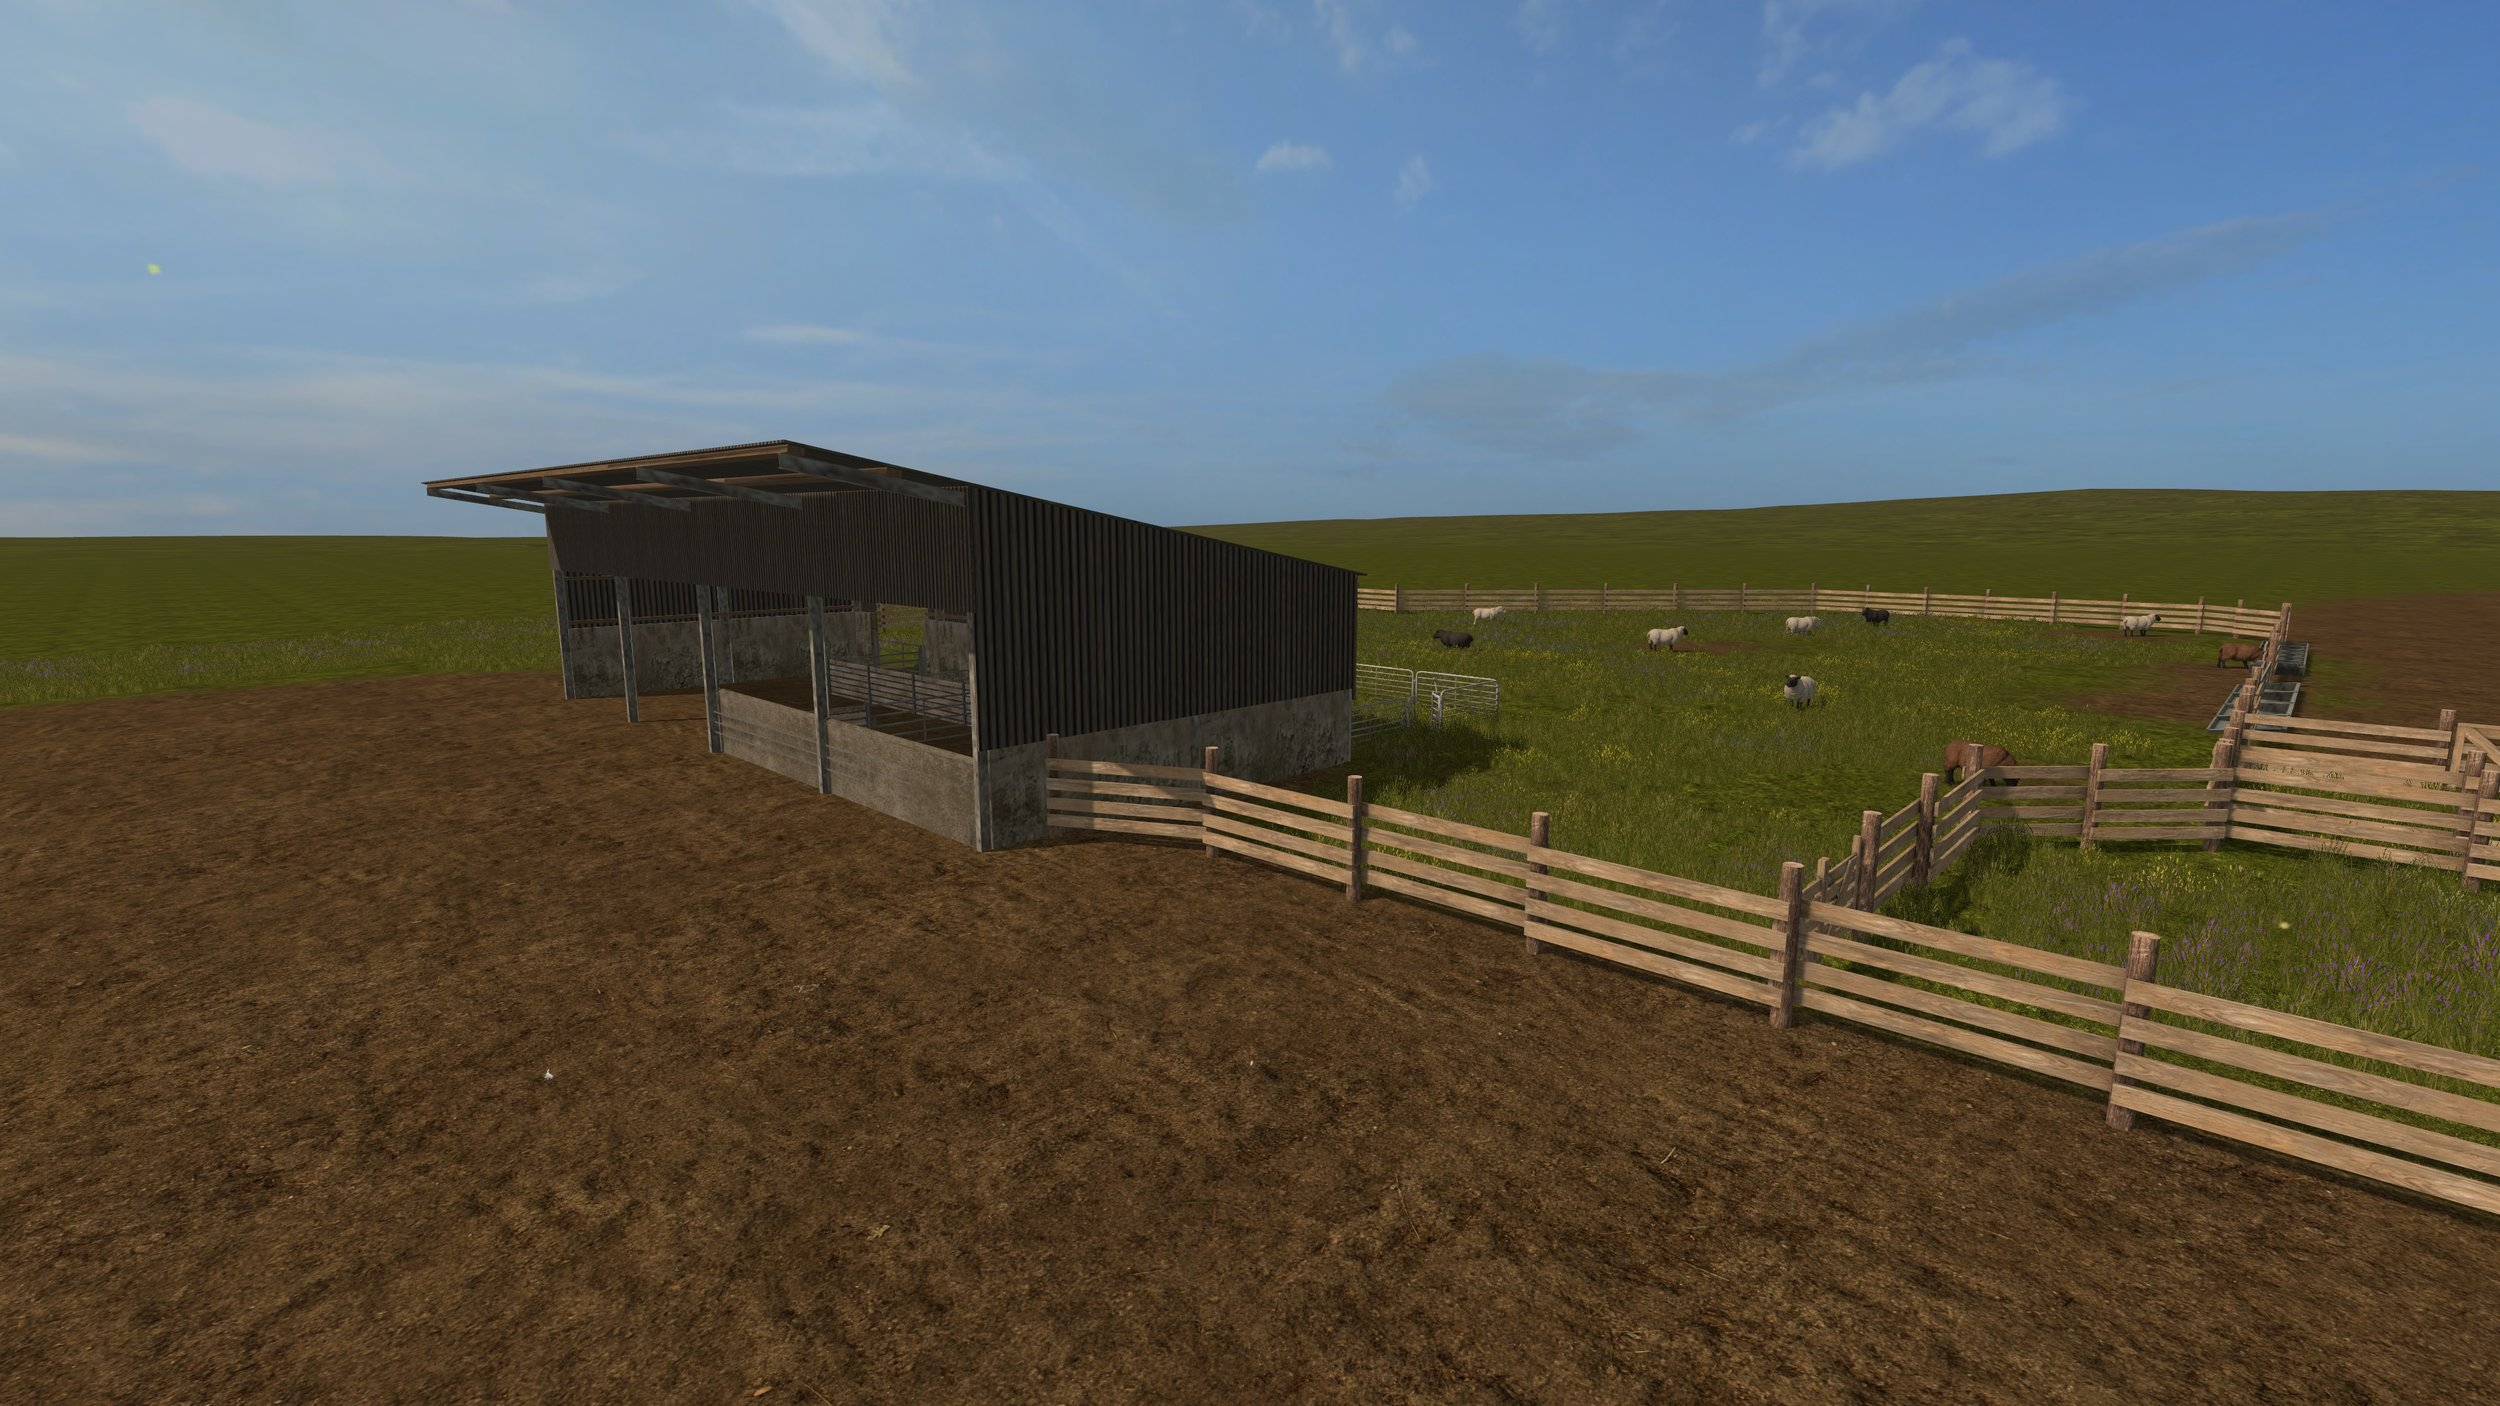 Sheep enclosure